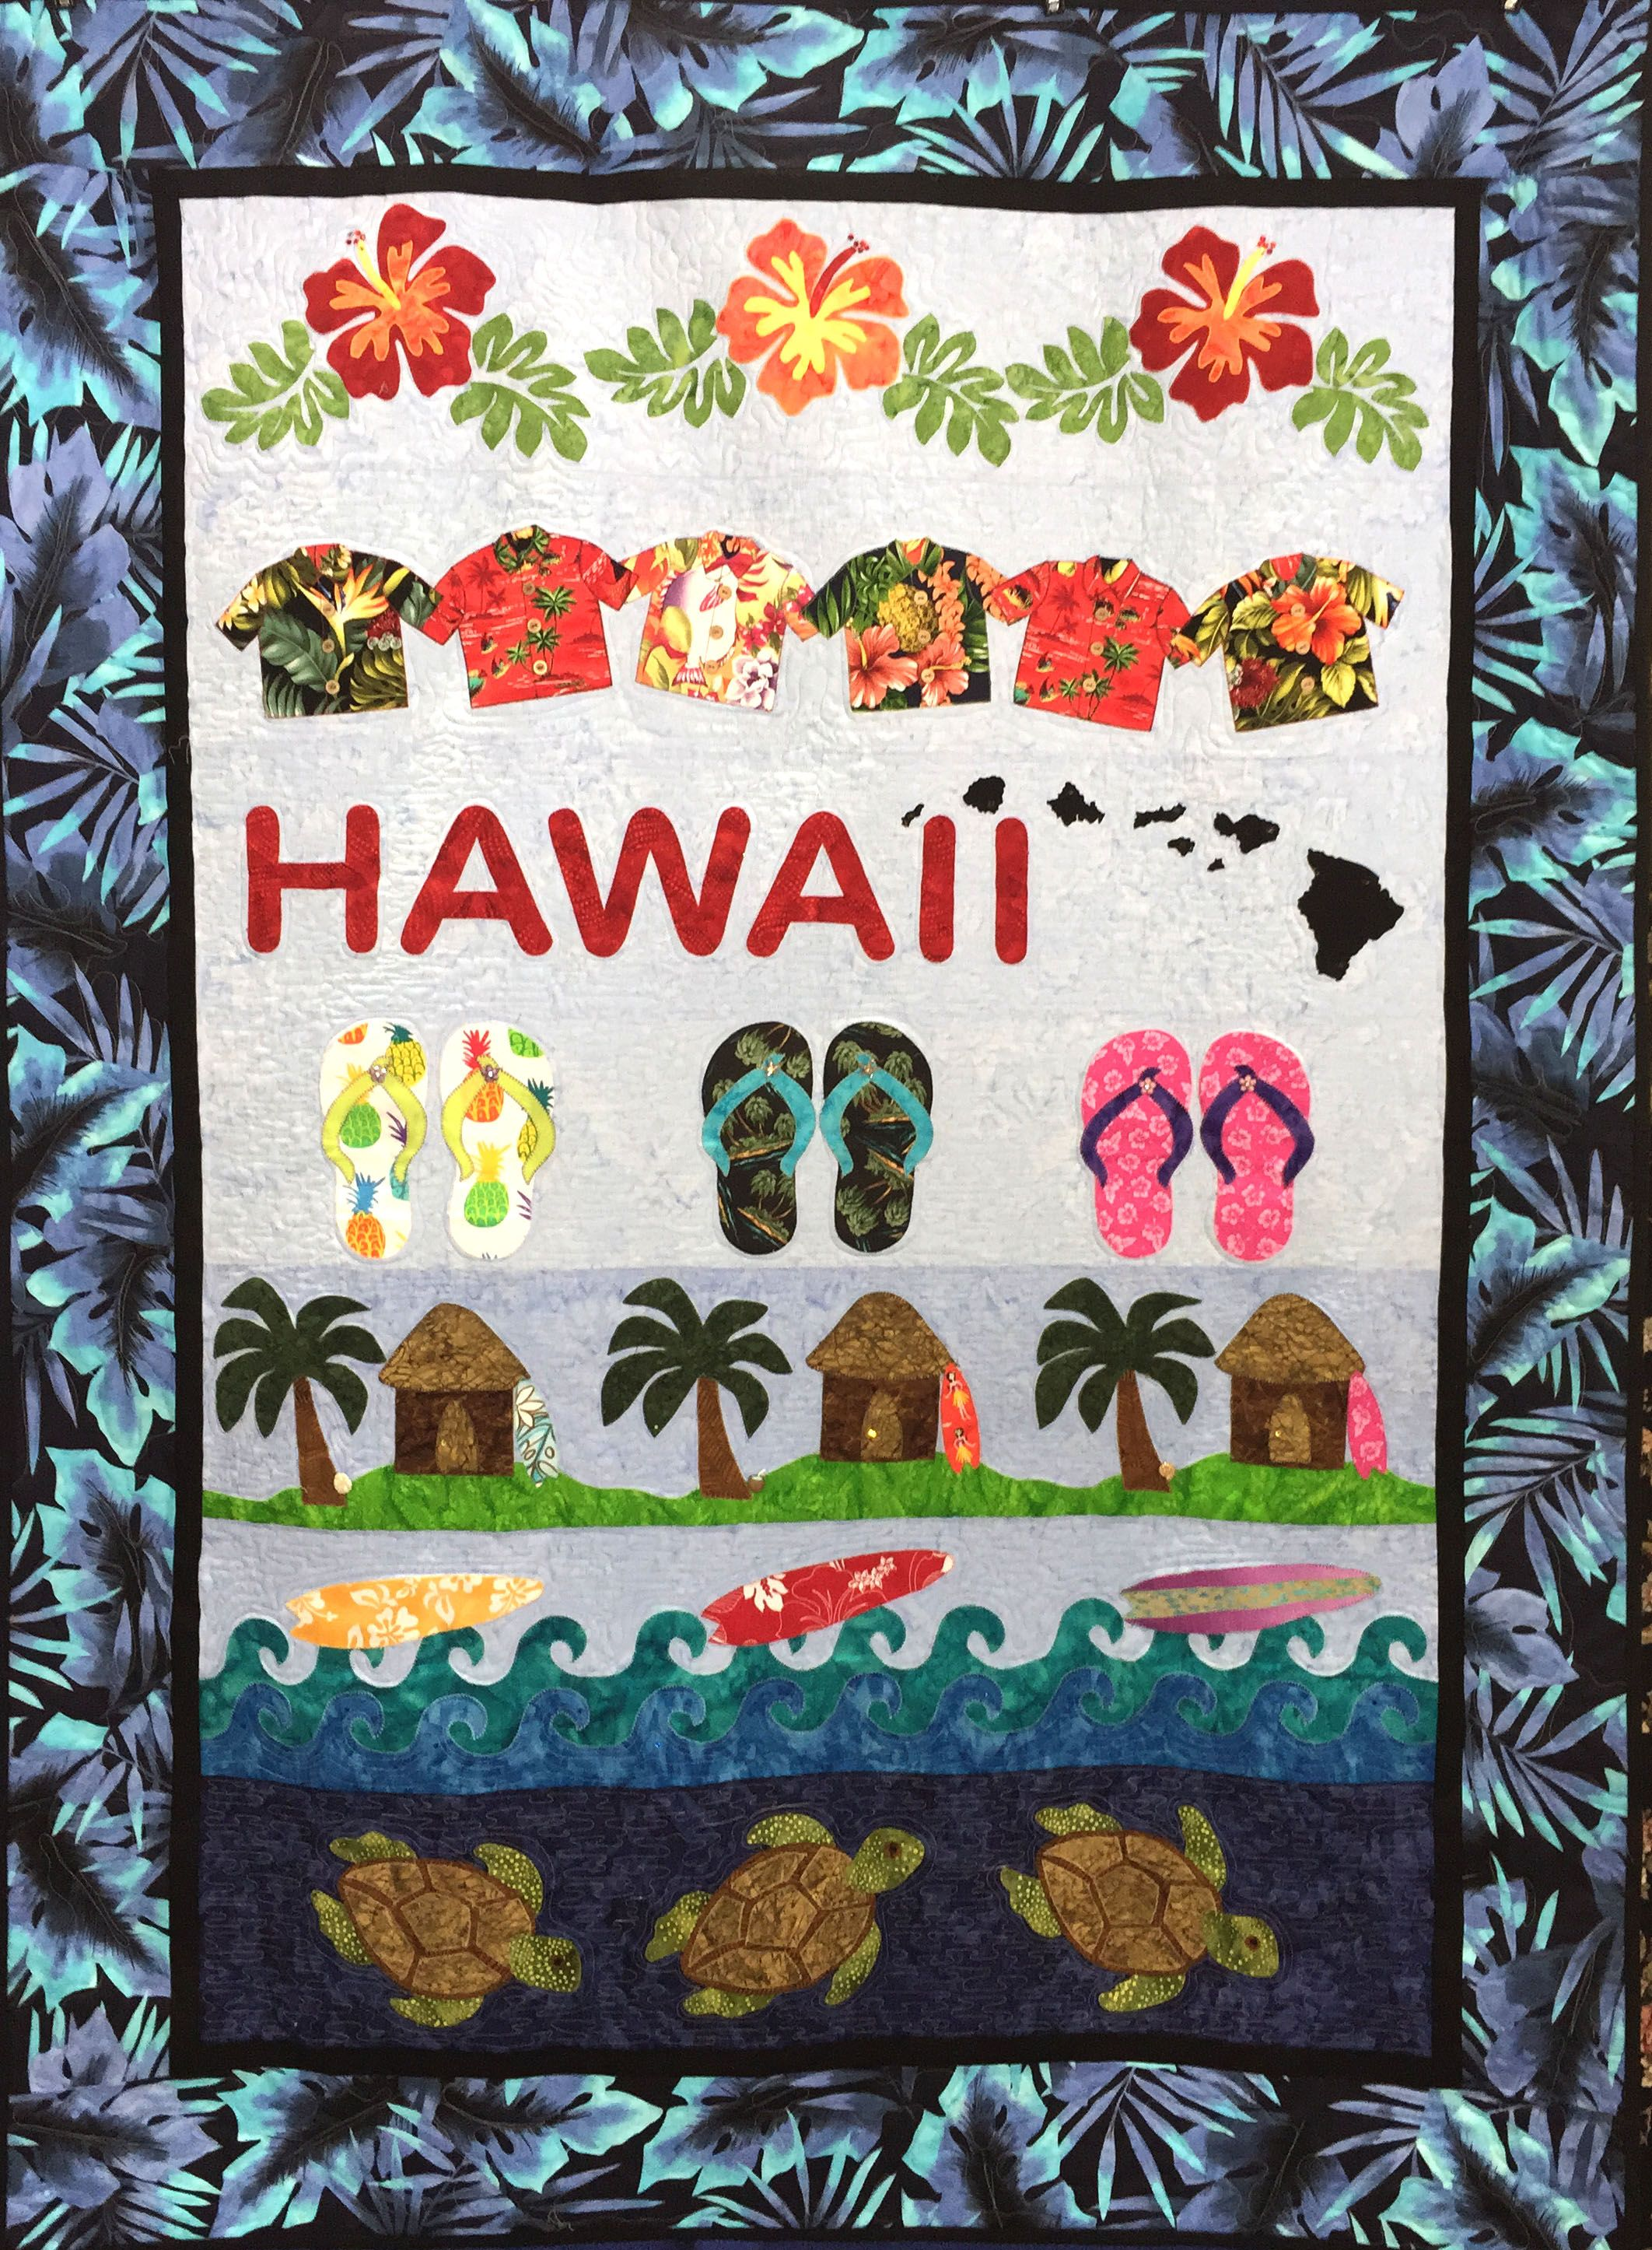 Hawaii Row by Row from Aloha Quilt Designs www.alohaquiltshop.com